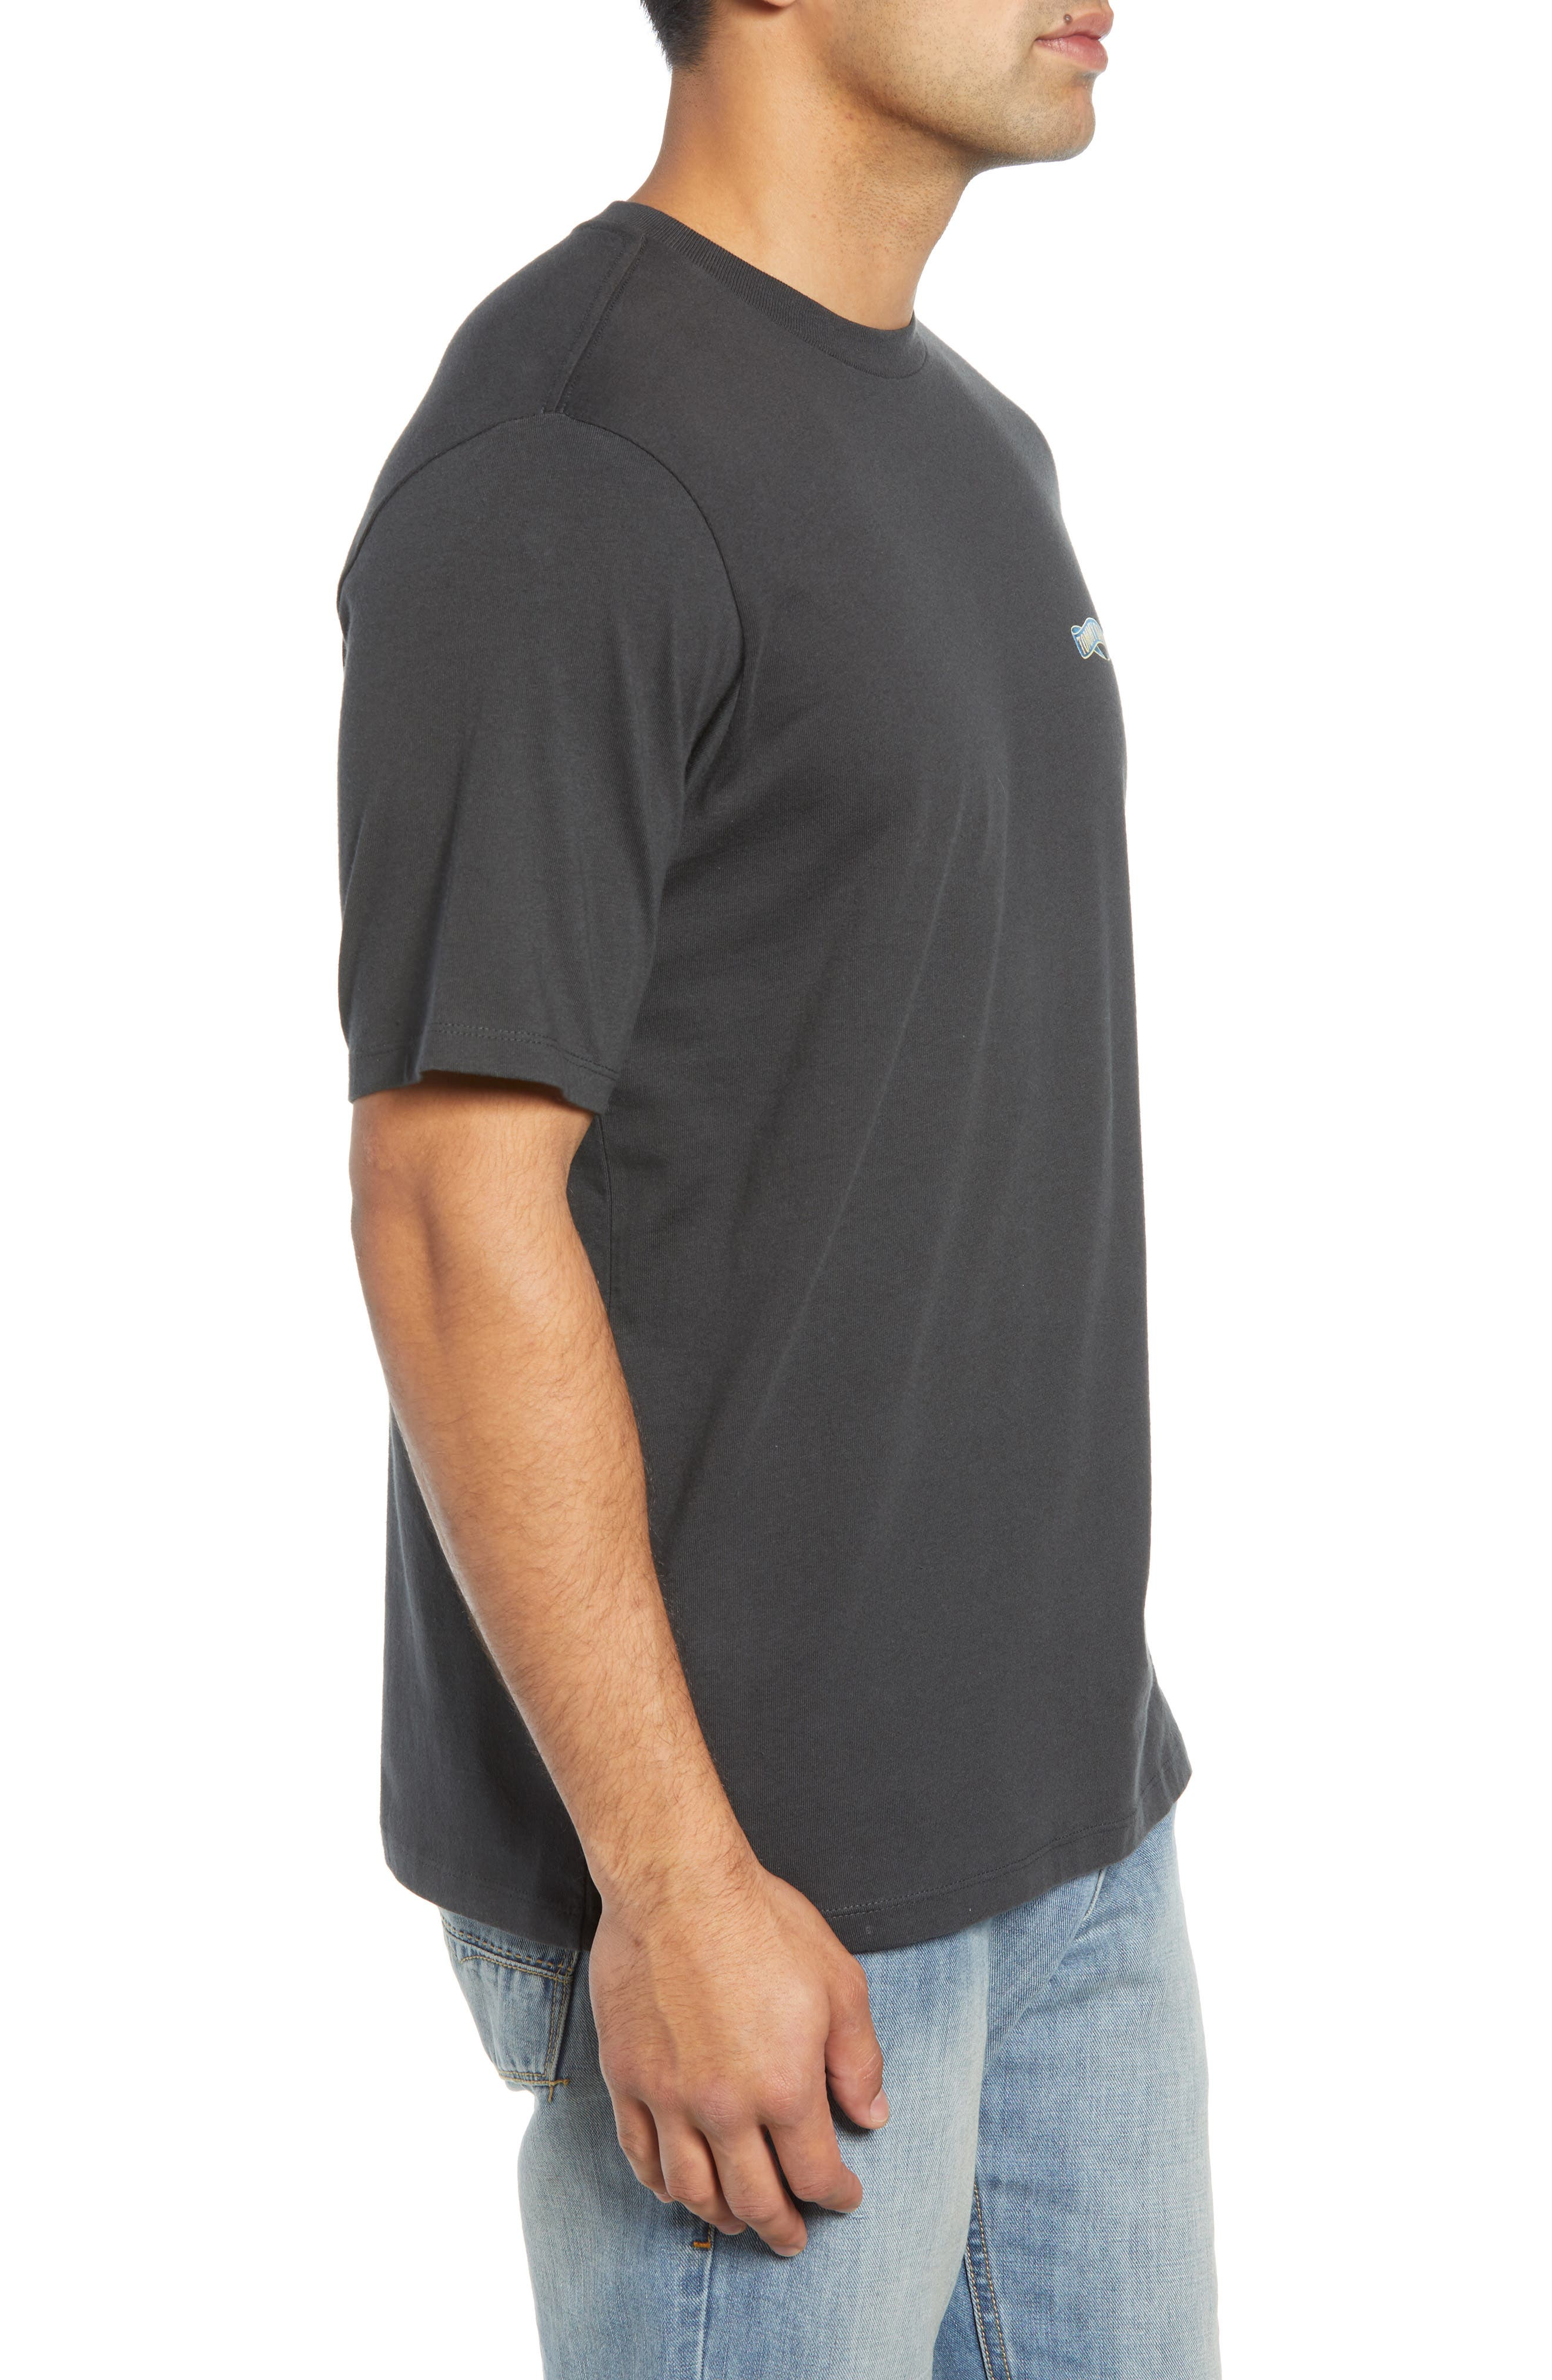 TOMMY BAHAMA,                             Find your Hoppy Place T-Shirt,                             Alternate thumbnail 3, color,                             001